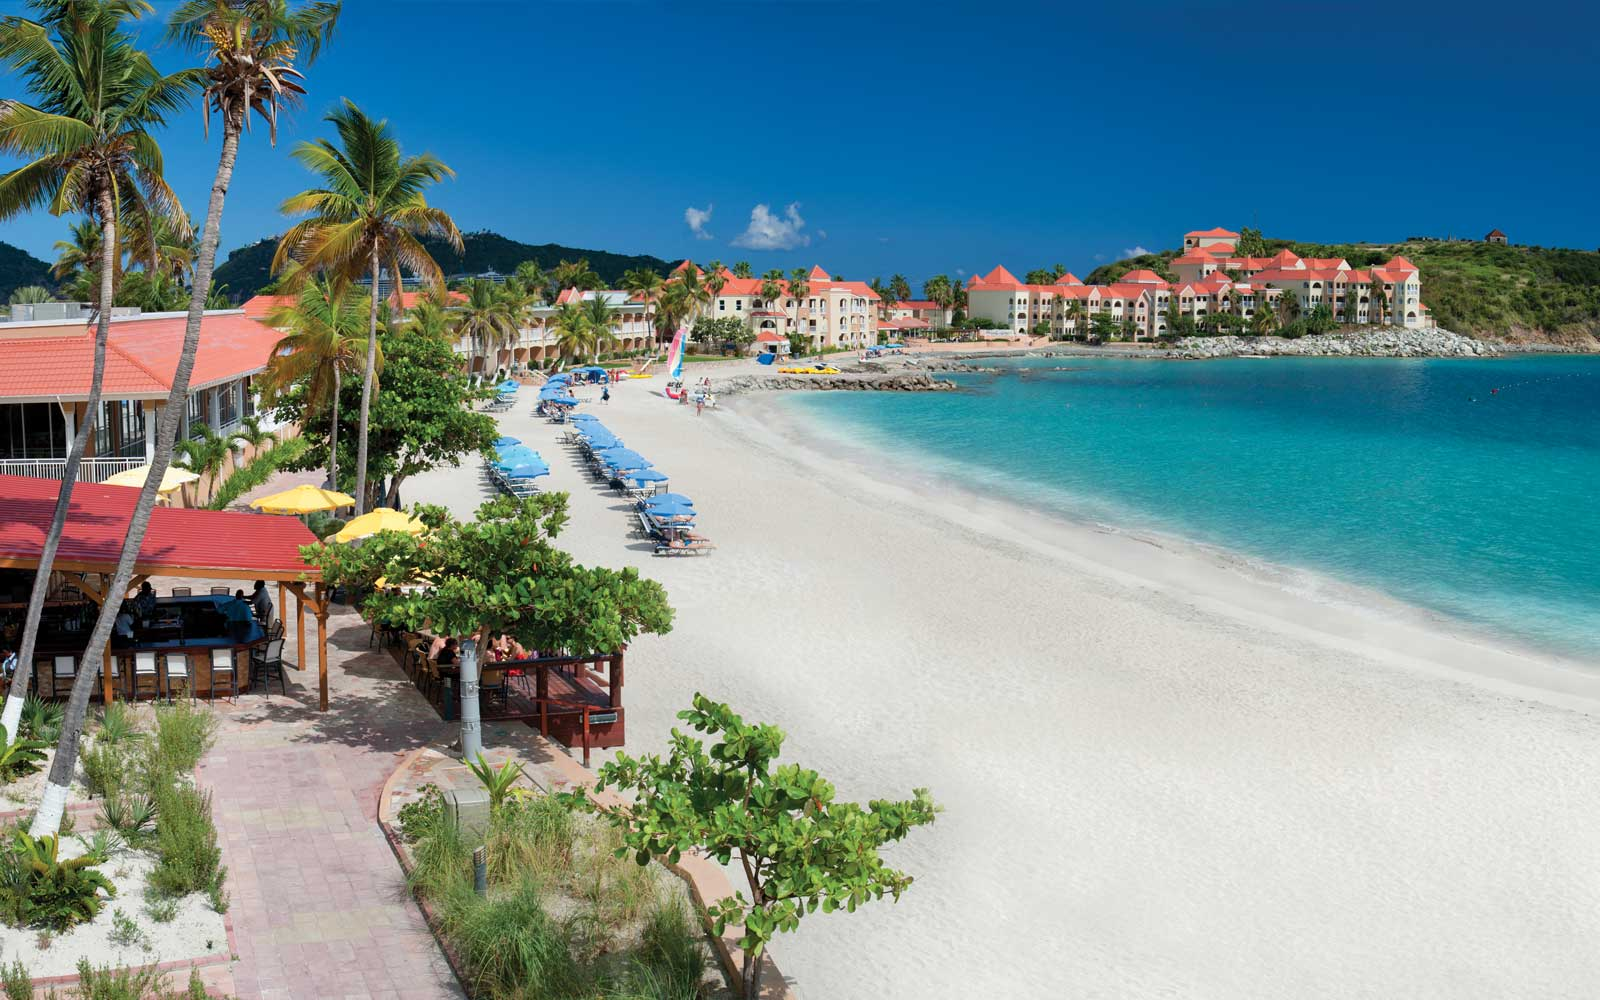 Enjoy 30% off Stays at This Family-Friendly Resort on St. Maarten's Little Bay